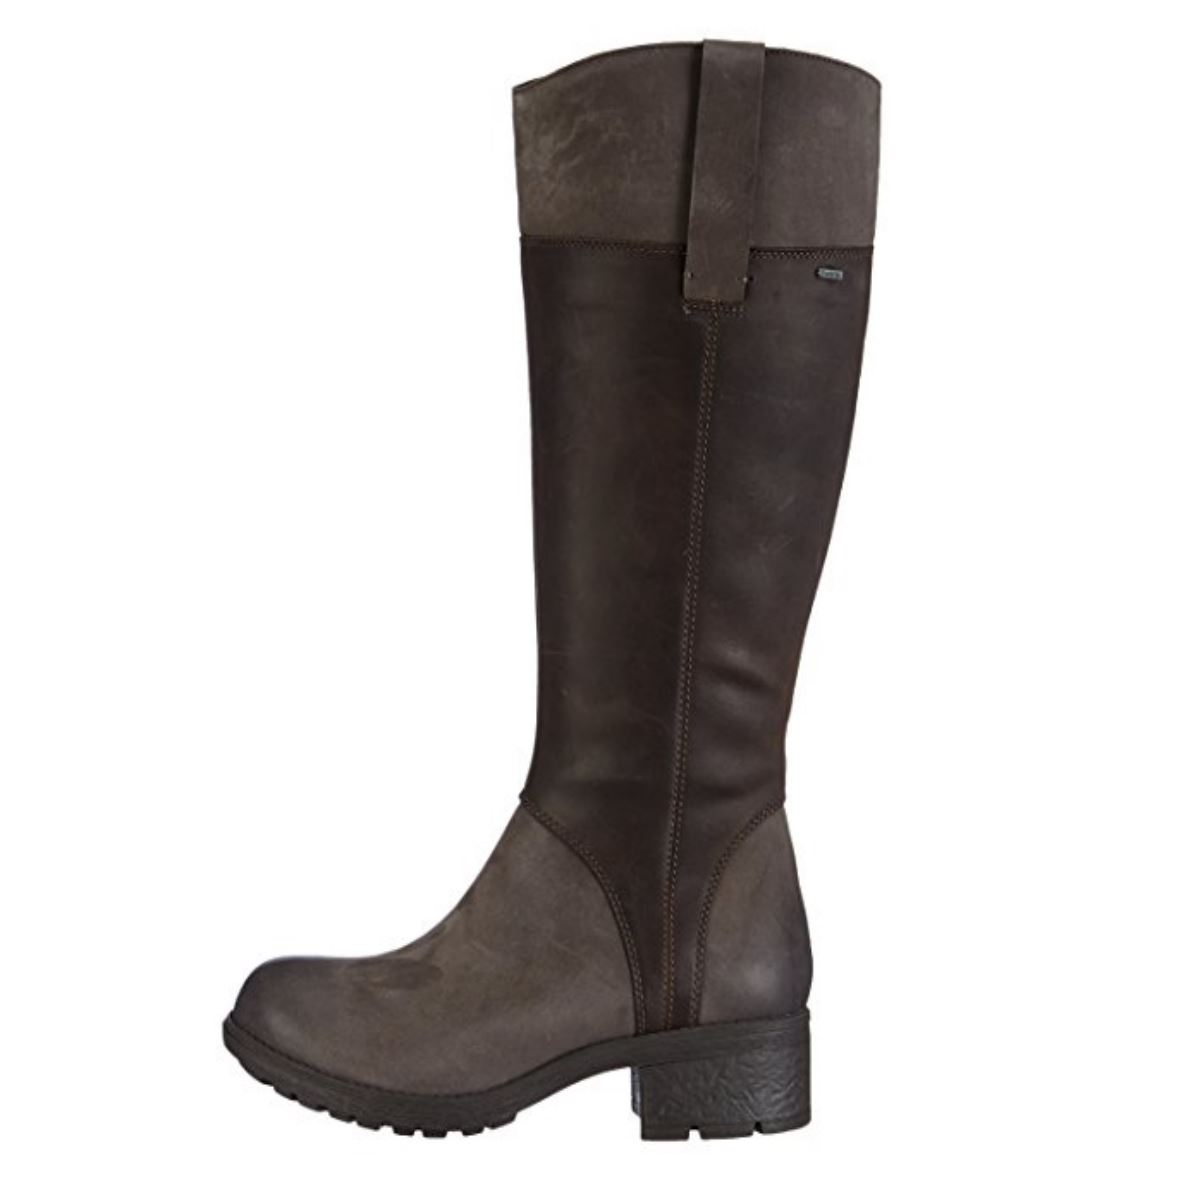 Ladies Clarks Gore-Tex Knee High Leather Boots Style - Mansi Cate ...